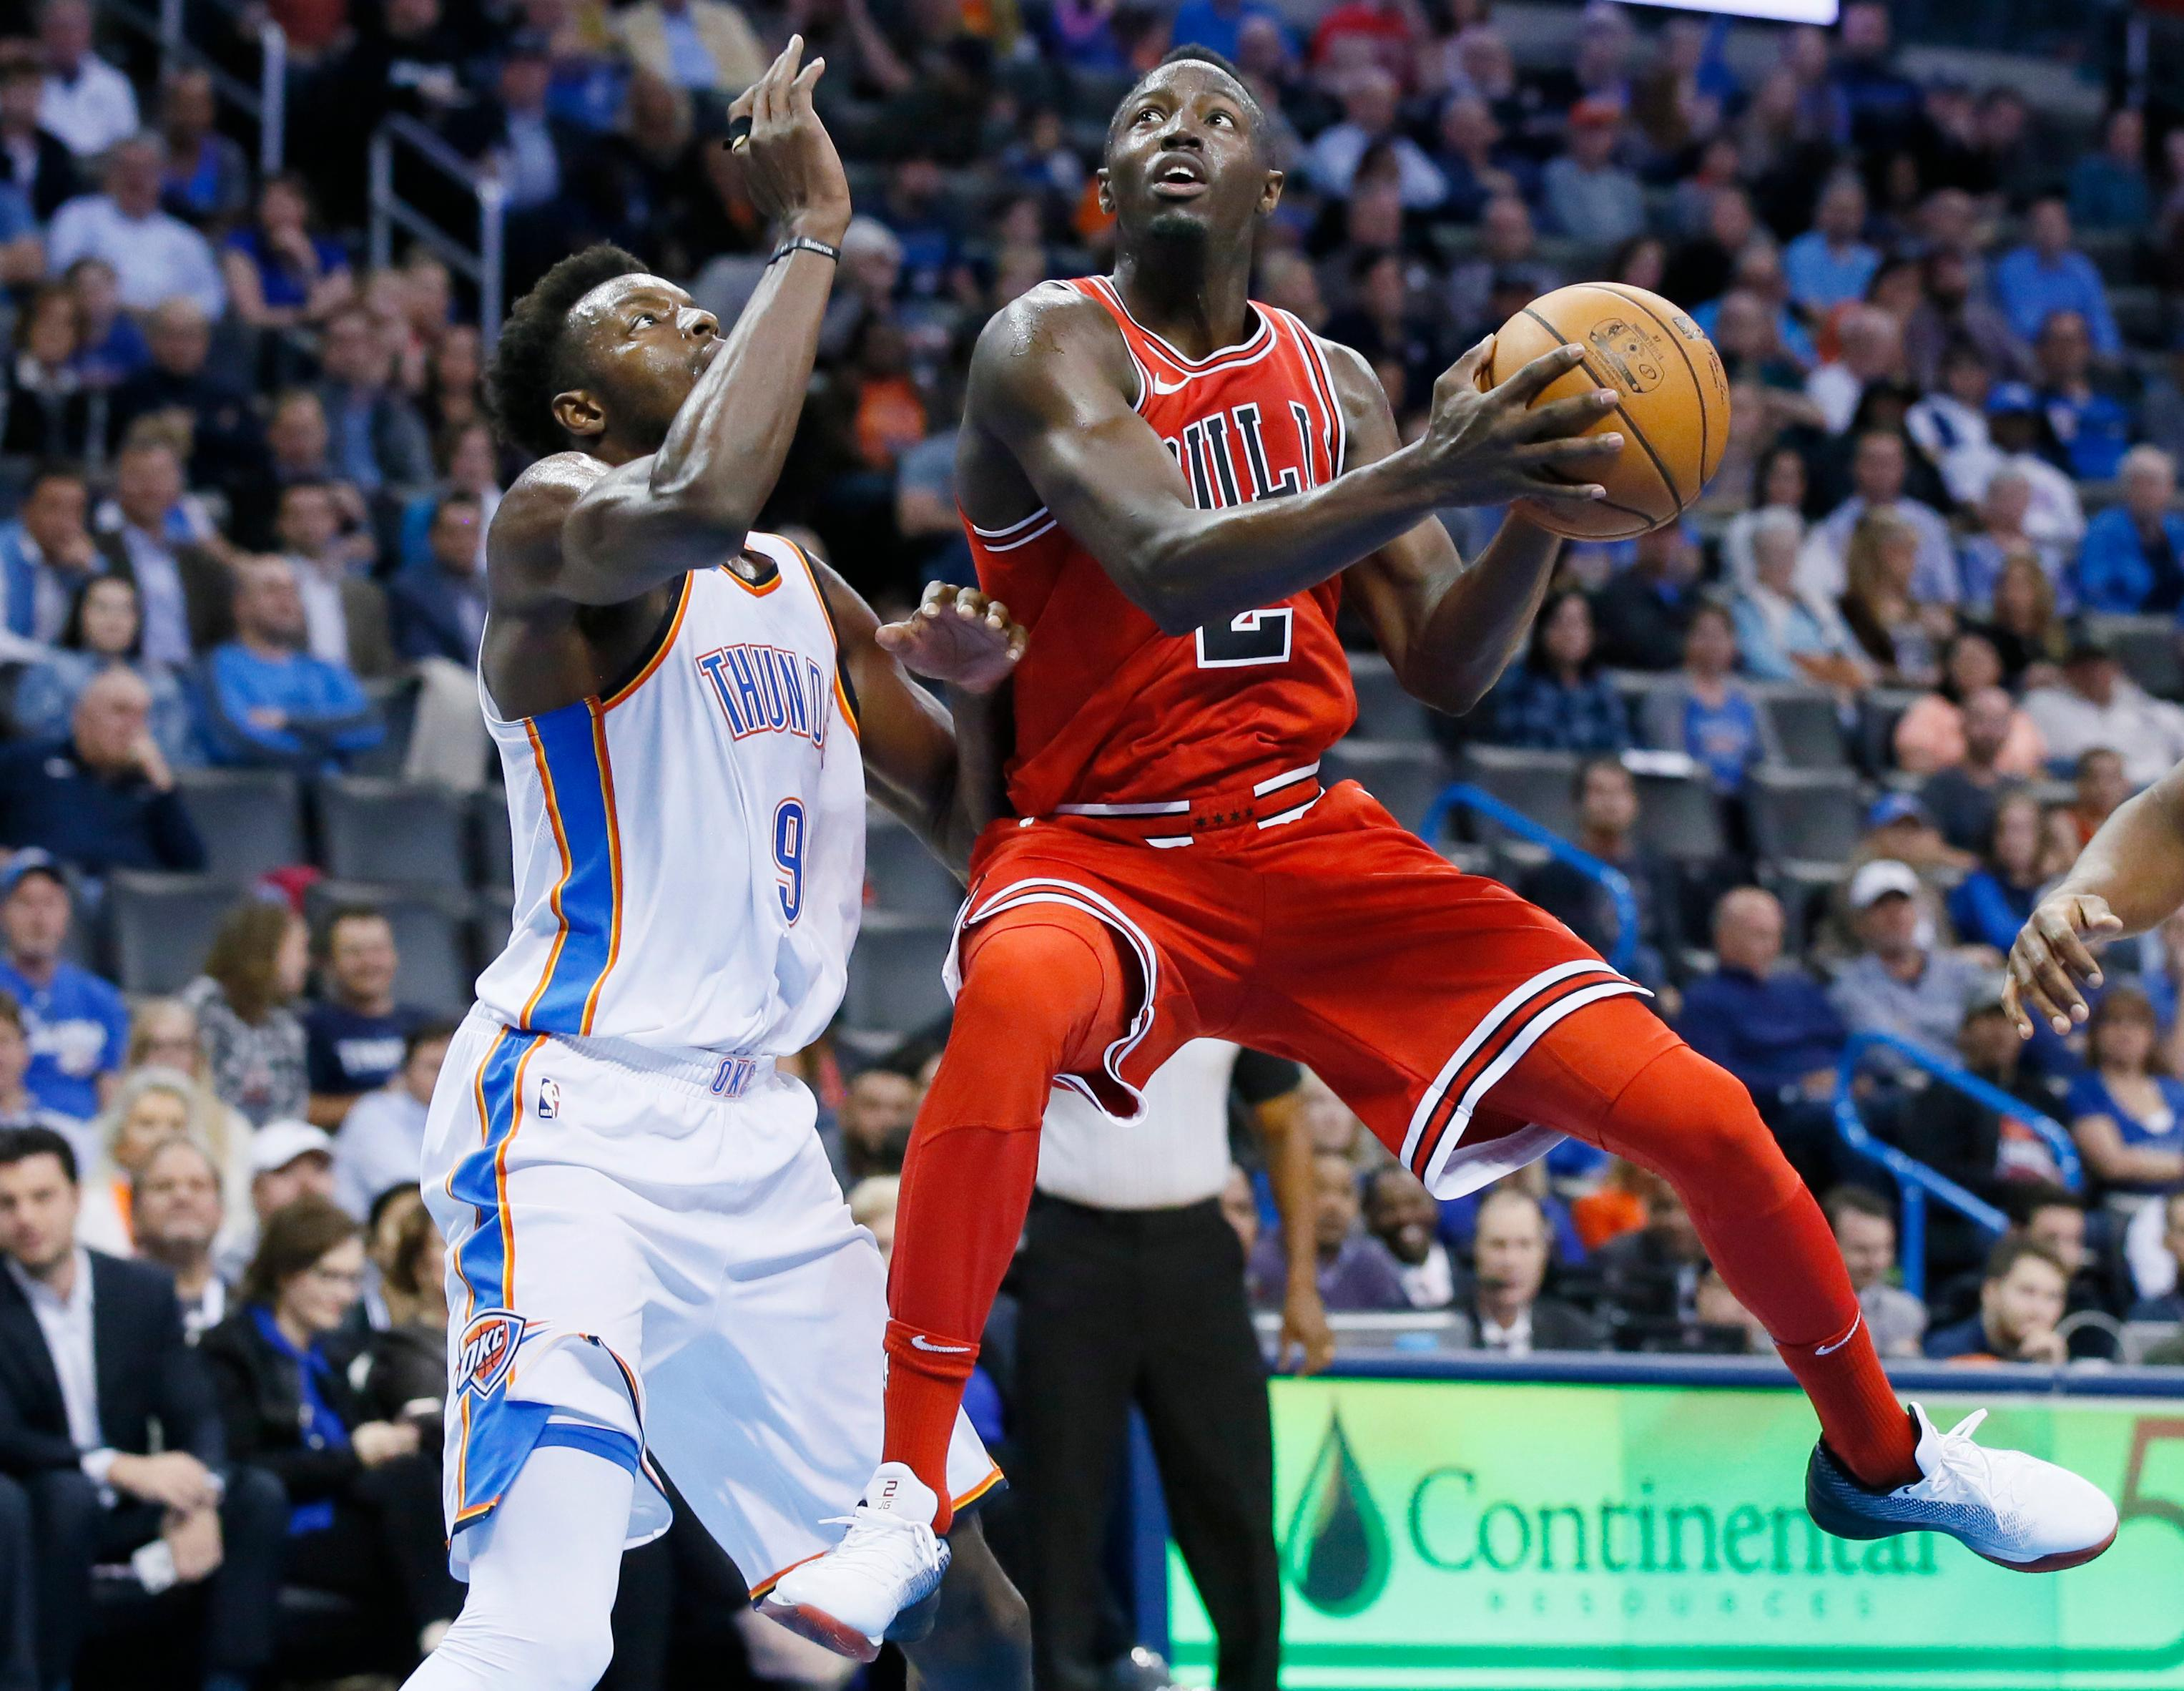 Chicago Bulls guard Jerian Grant (2) goes to the basket in front of Oklahoma City Thunder forward Jerami Grant, left, in the second quarter of an NBA basketball game in Oklahoma City, Wednesday, Nov. 15, 2017. (AP Photo/Sue Ogrocki)